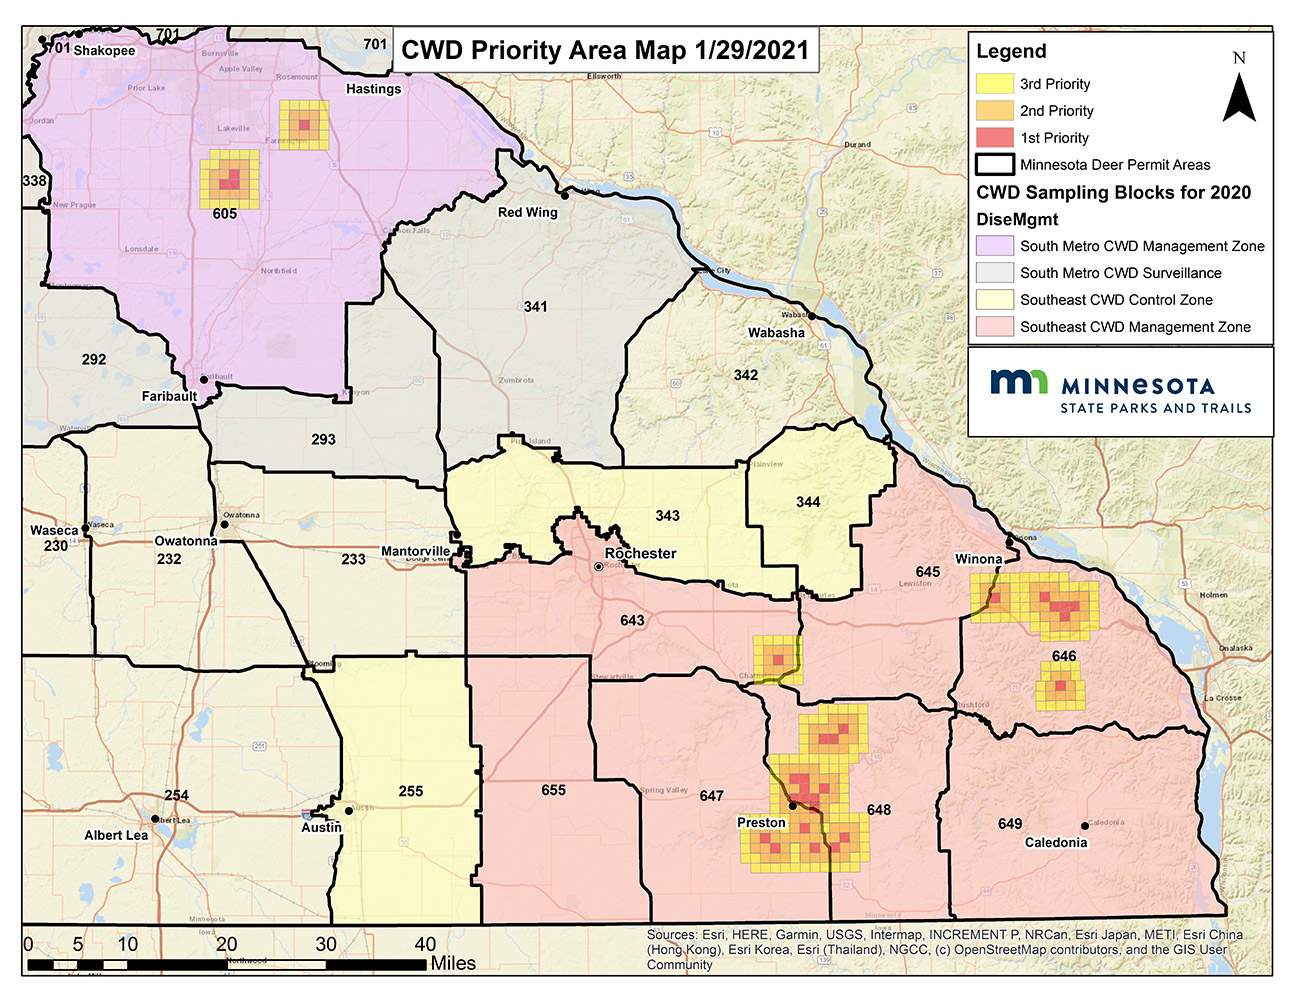 Map of the areas of focus for 2021 USDA targeted culling in Minnesota